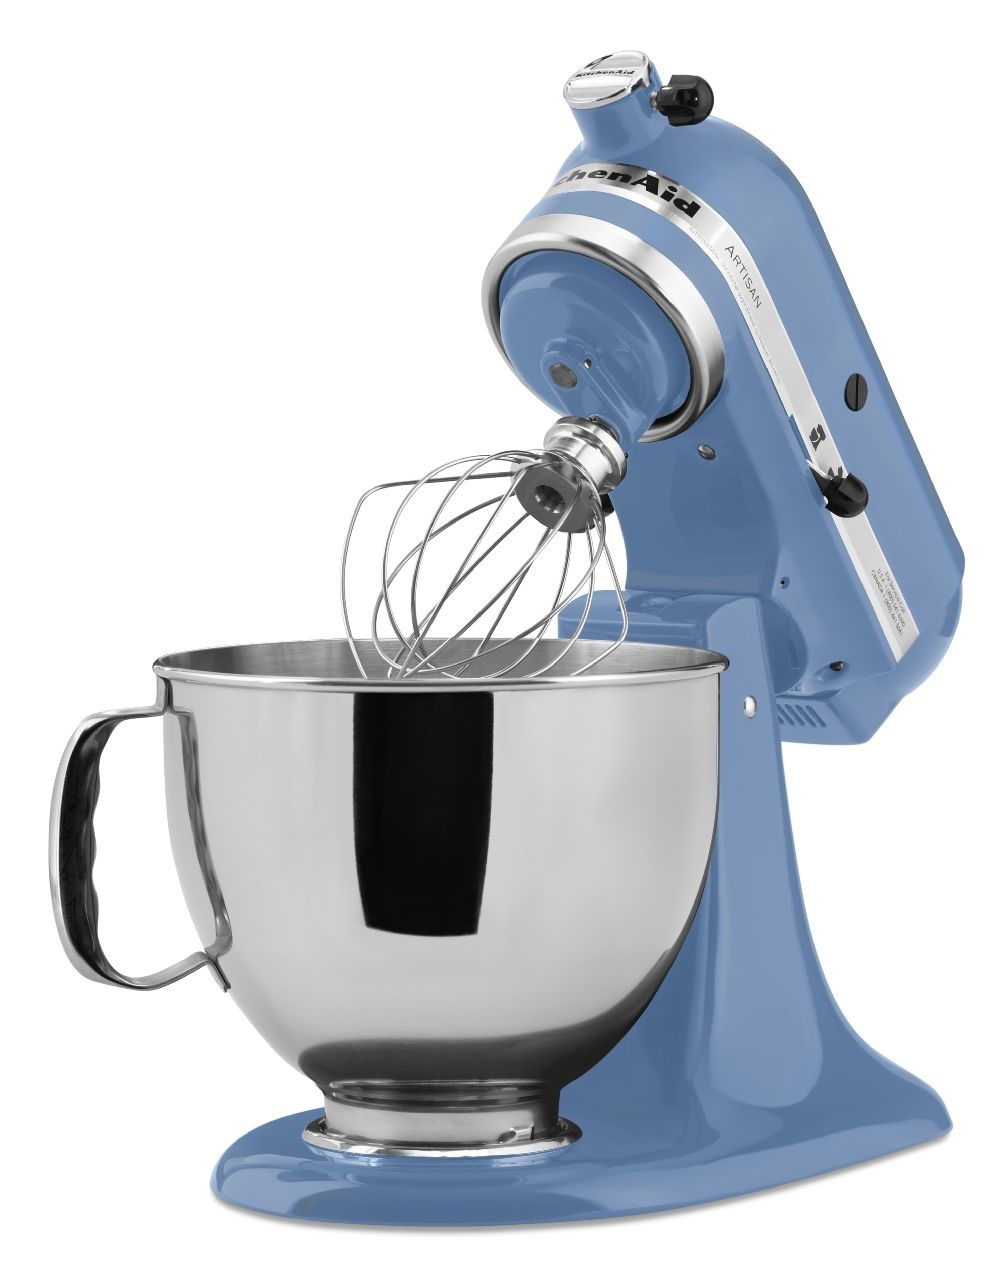 KitchenAid-Refurbished-Artisan-Series-5-Quart-Tilt-Head-Stand-Mixer-RRK150 thumbnail 33